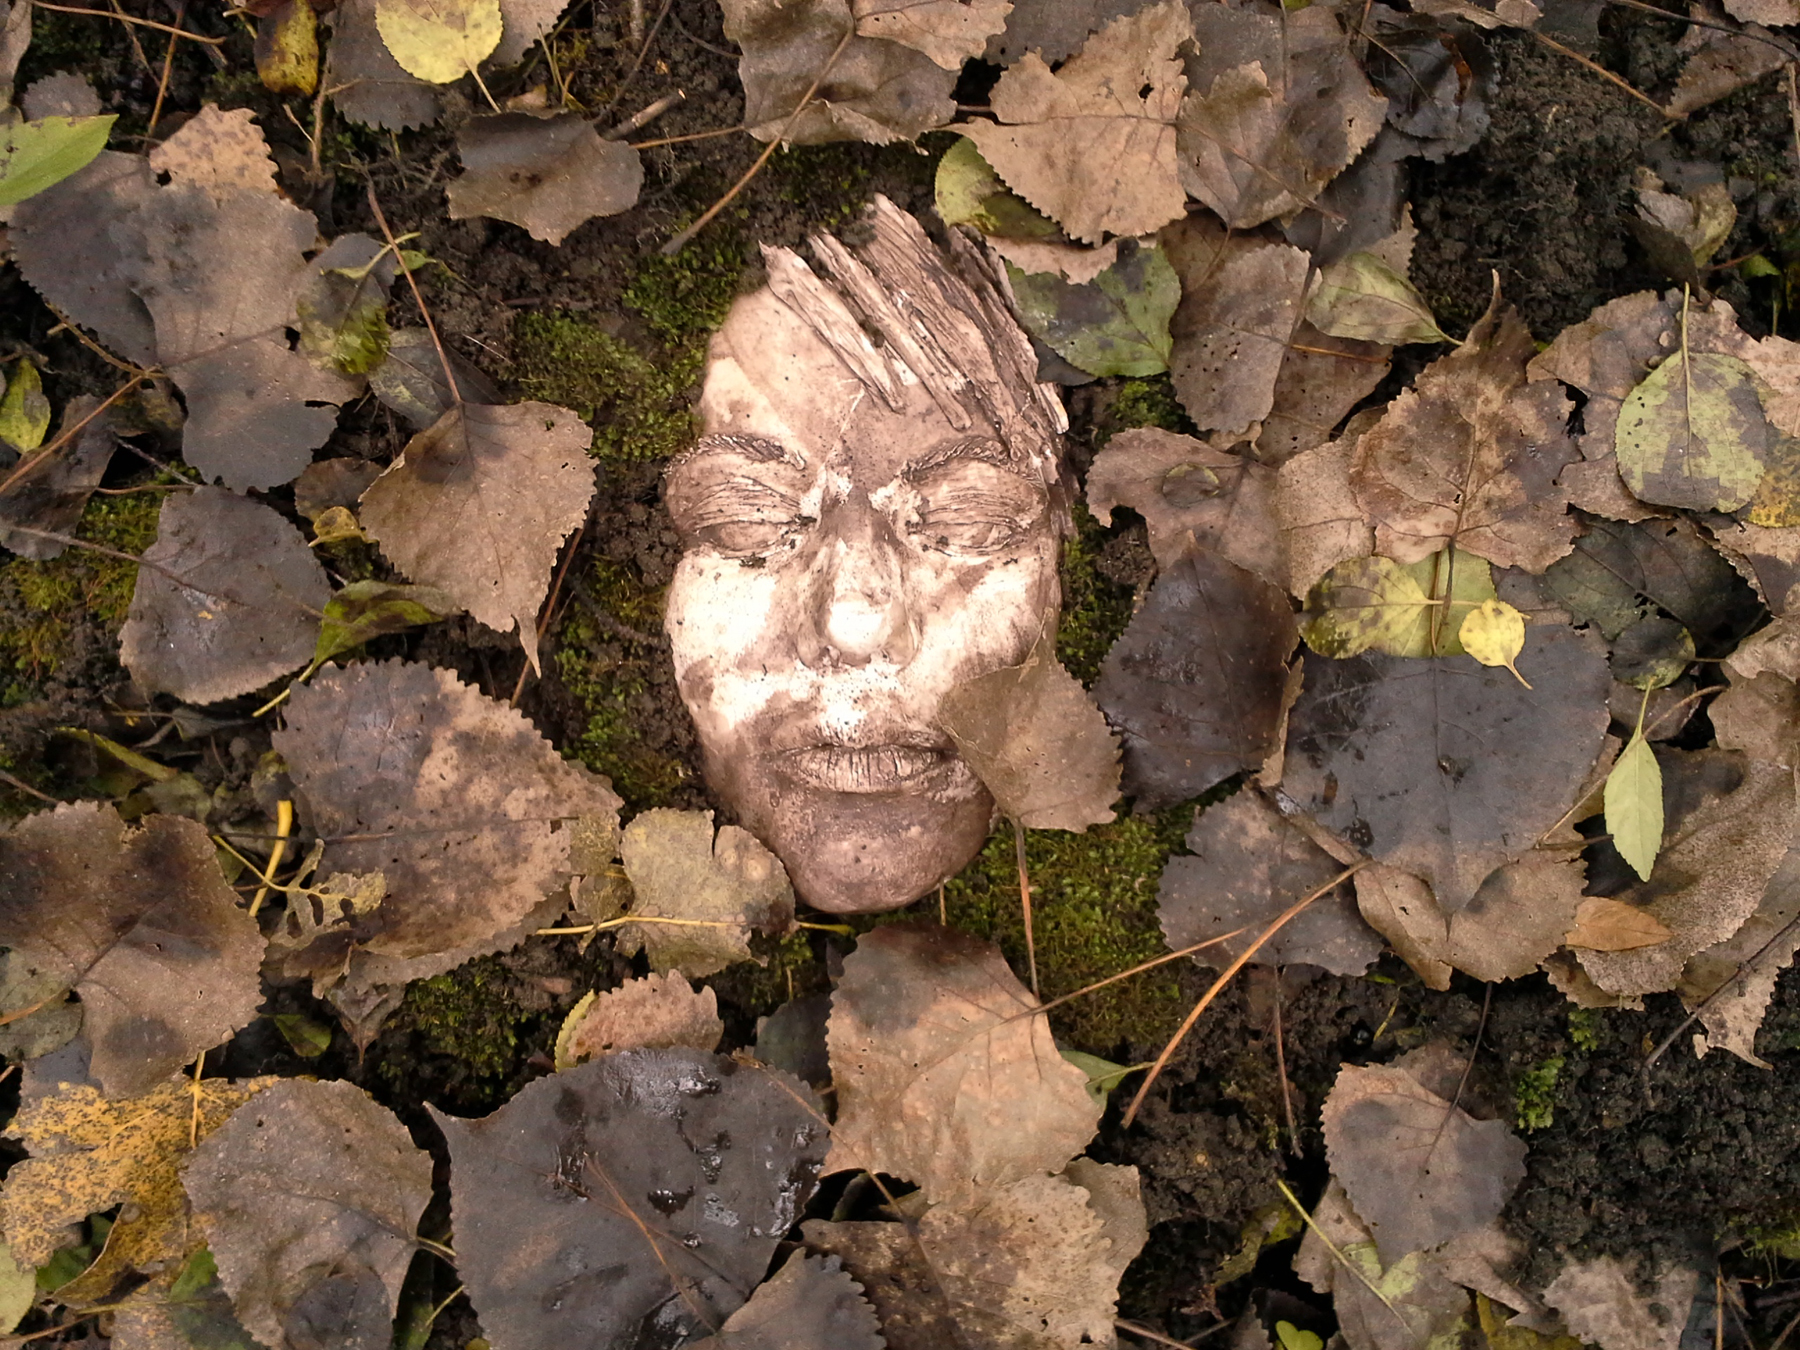 A face peeks out of the foliage in The Winterbourne Woods. Image courtesy of The Impossible Winterbourne.